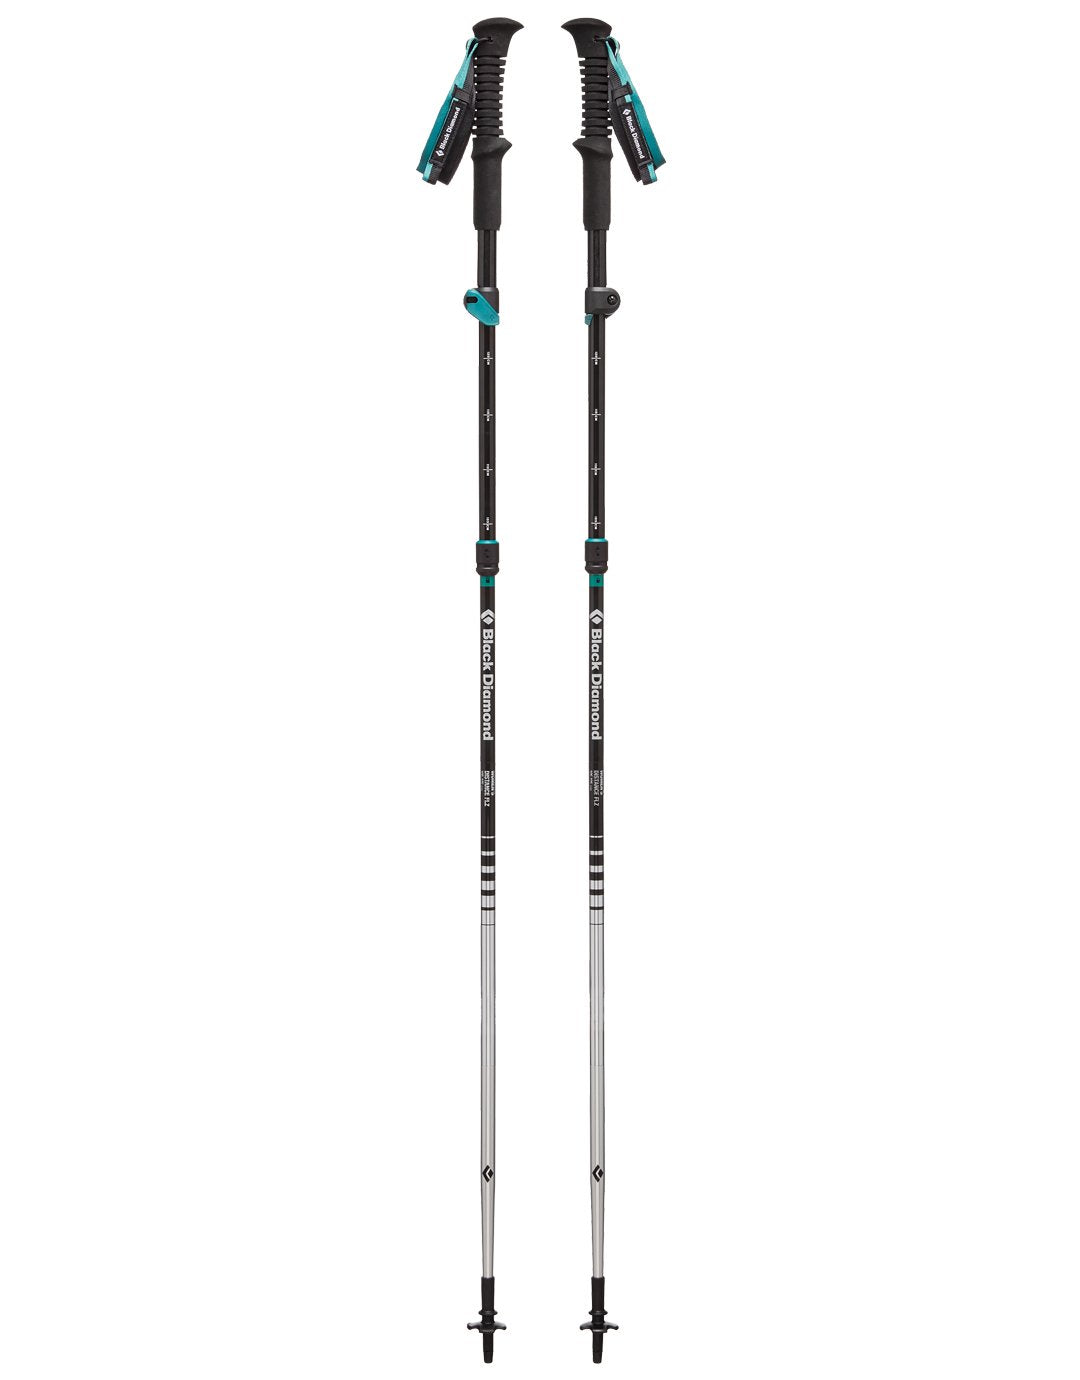 Womens Distance FLZ Walking Poles - Pair - 105-125cm